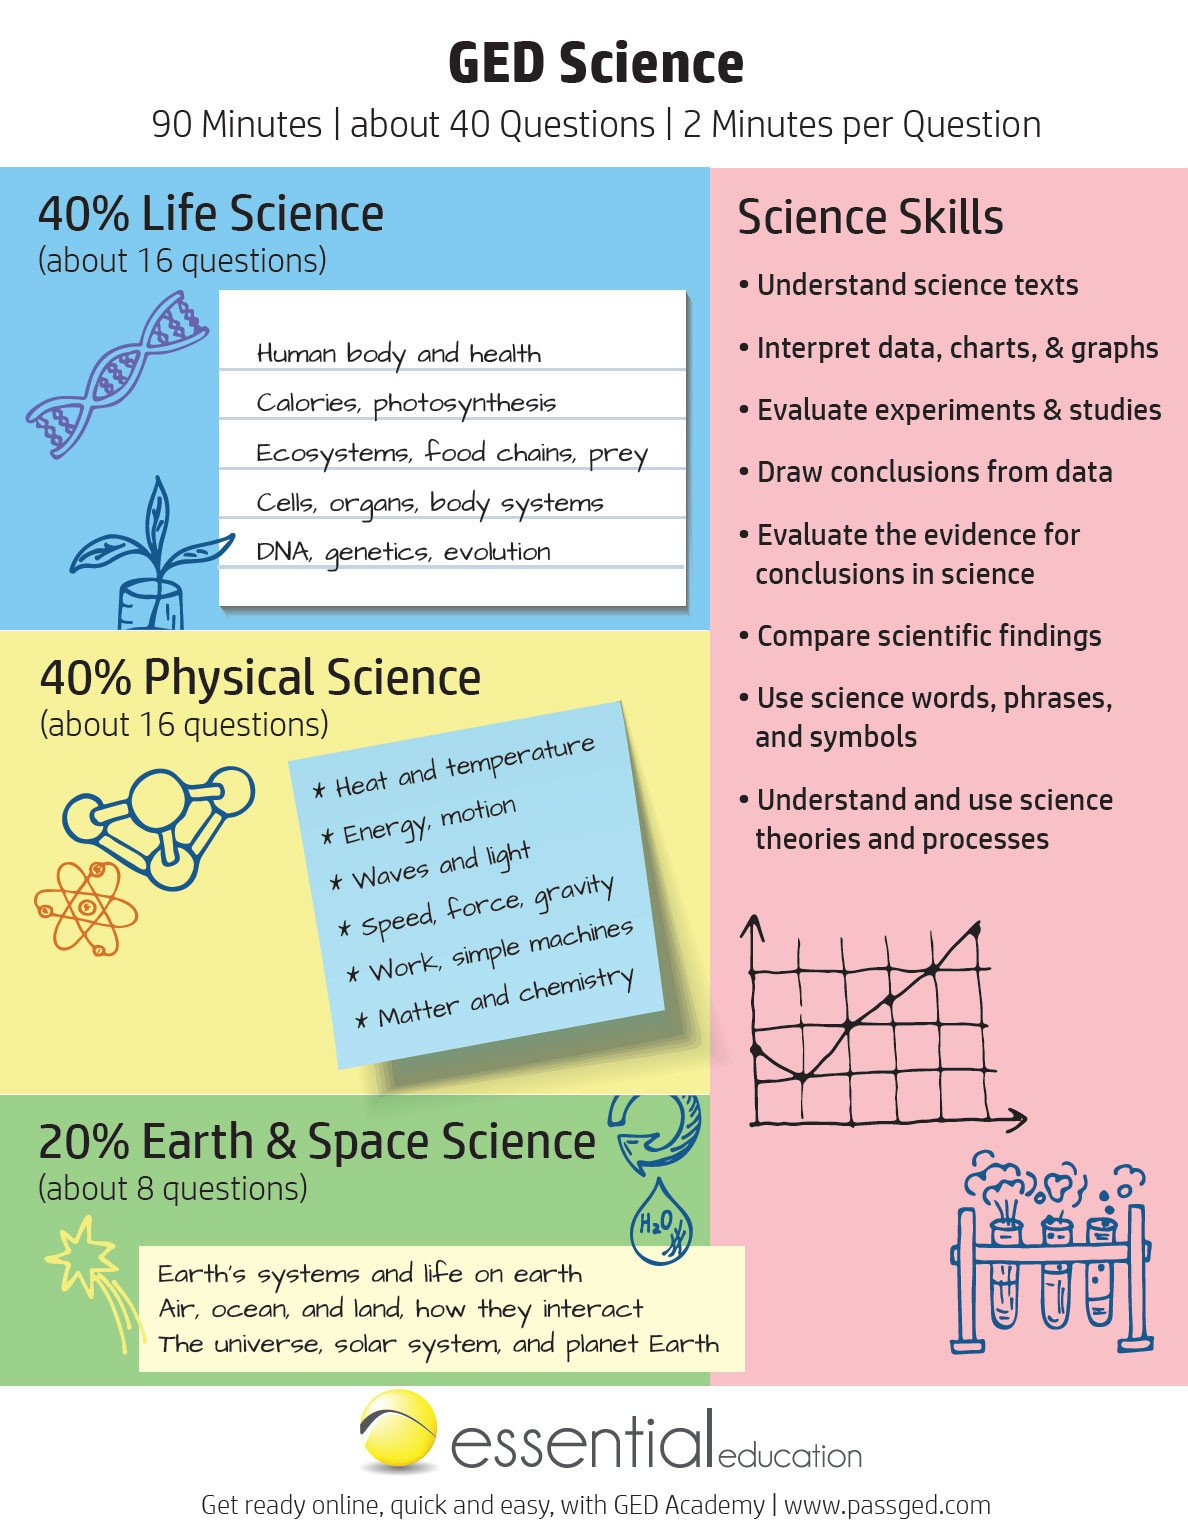 ged science cheat sheet